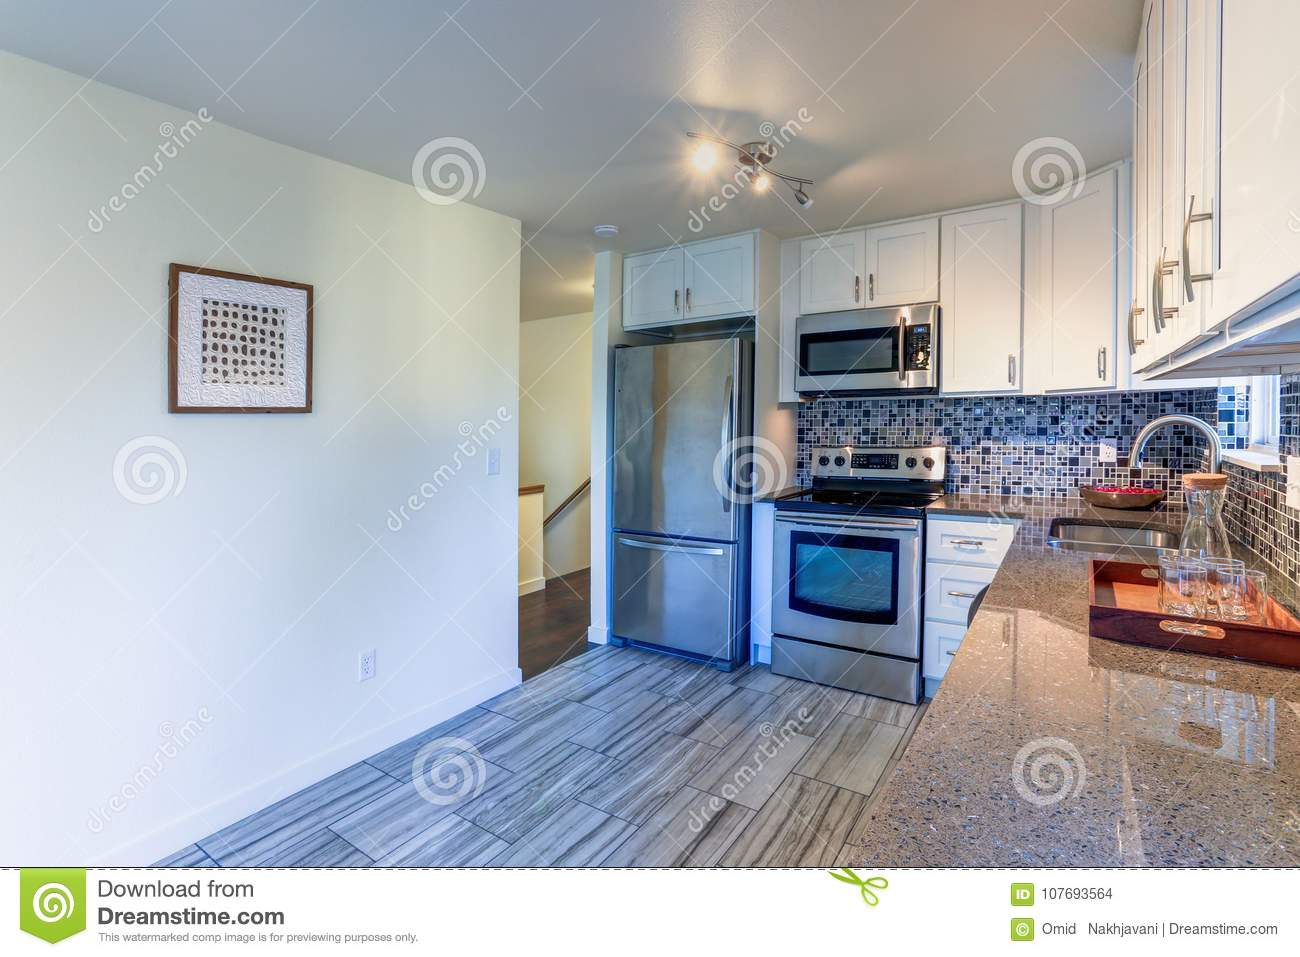 L-shape Kitchen Room Design Stock Photo - Image of interior, counter ...